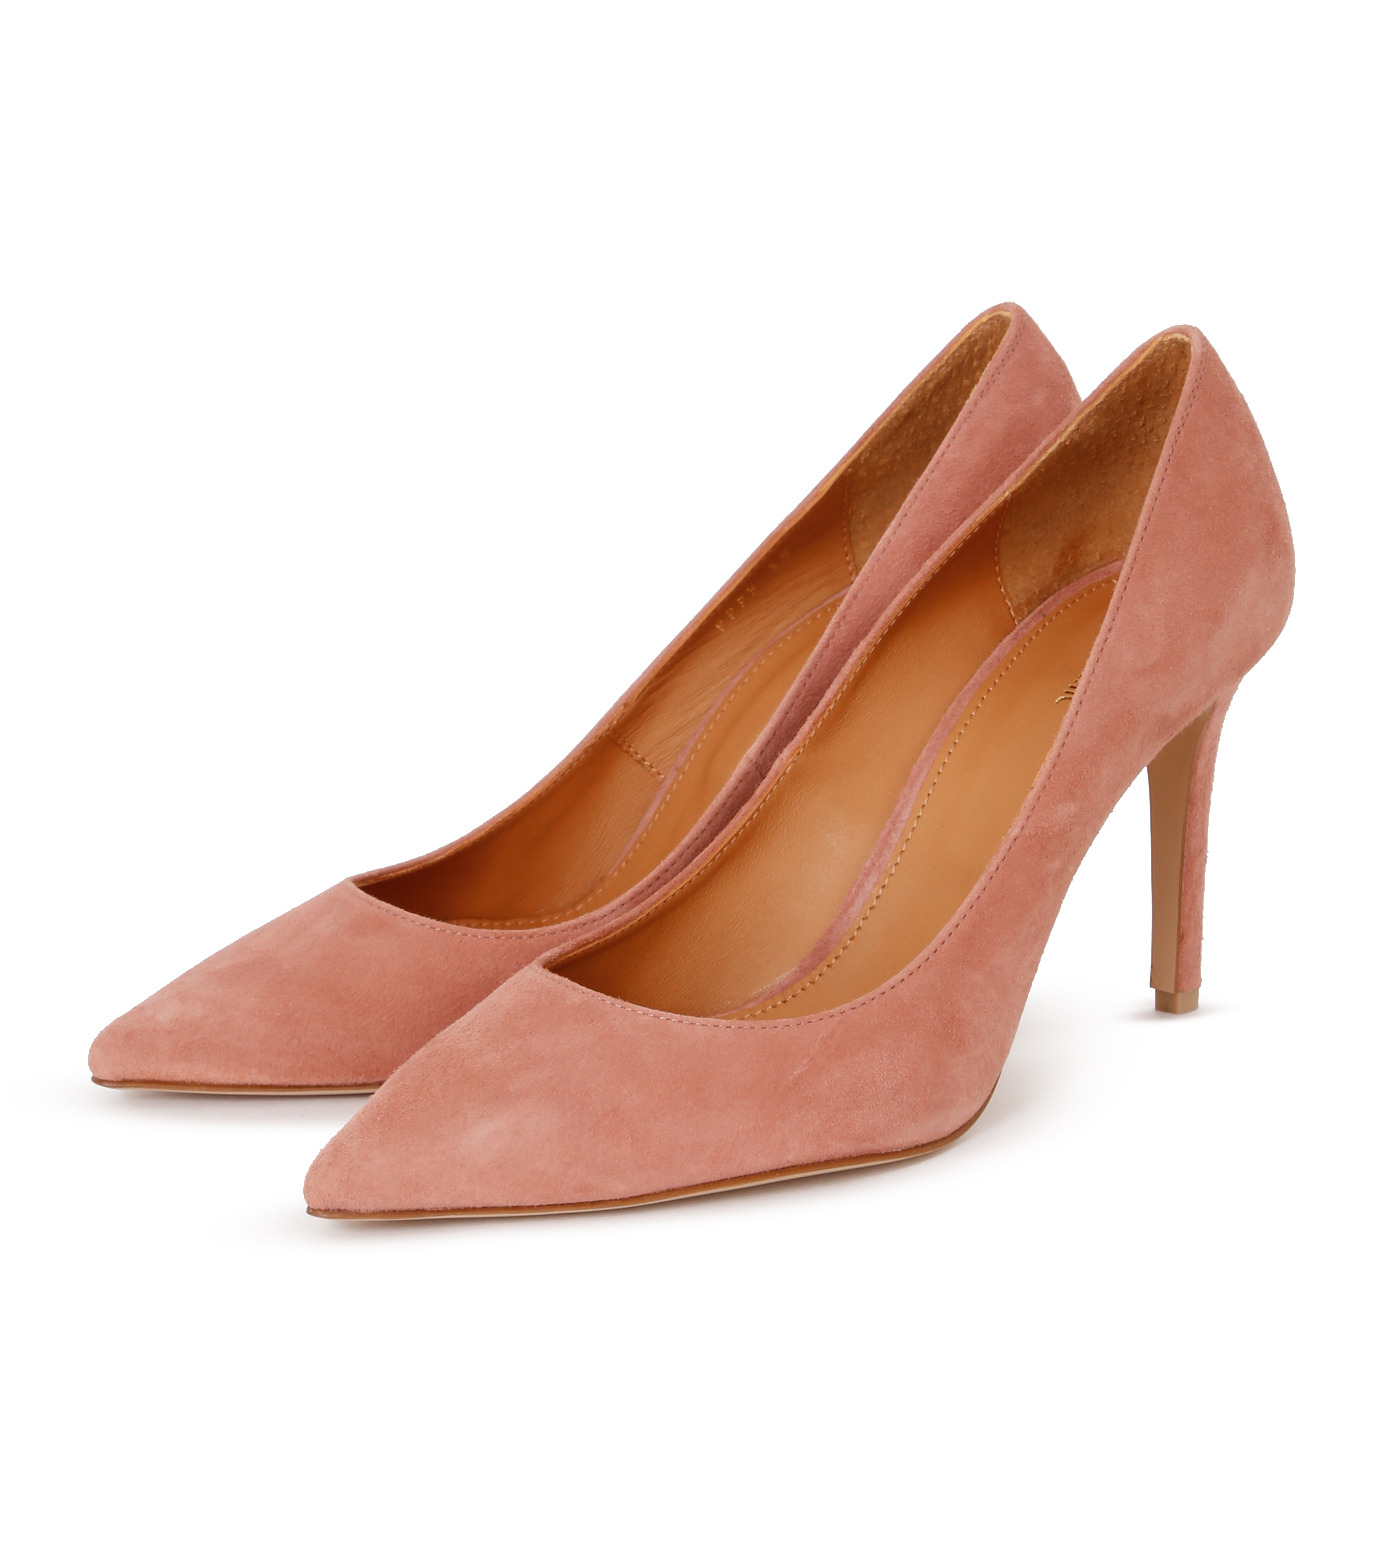 PIPPICHIC(ピッピシック)のPointed Toe 85mm Heel Pumps-LIGHT PINK(パンプス/pumps)-PP16-PPP9-L 拡大詳細画像2